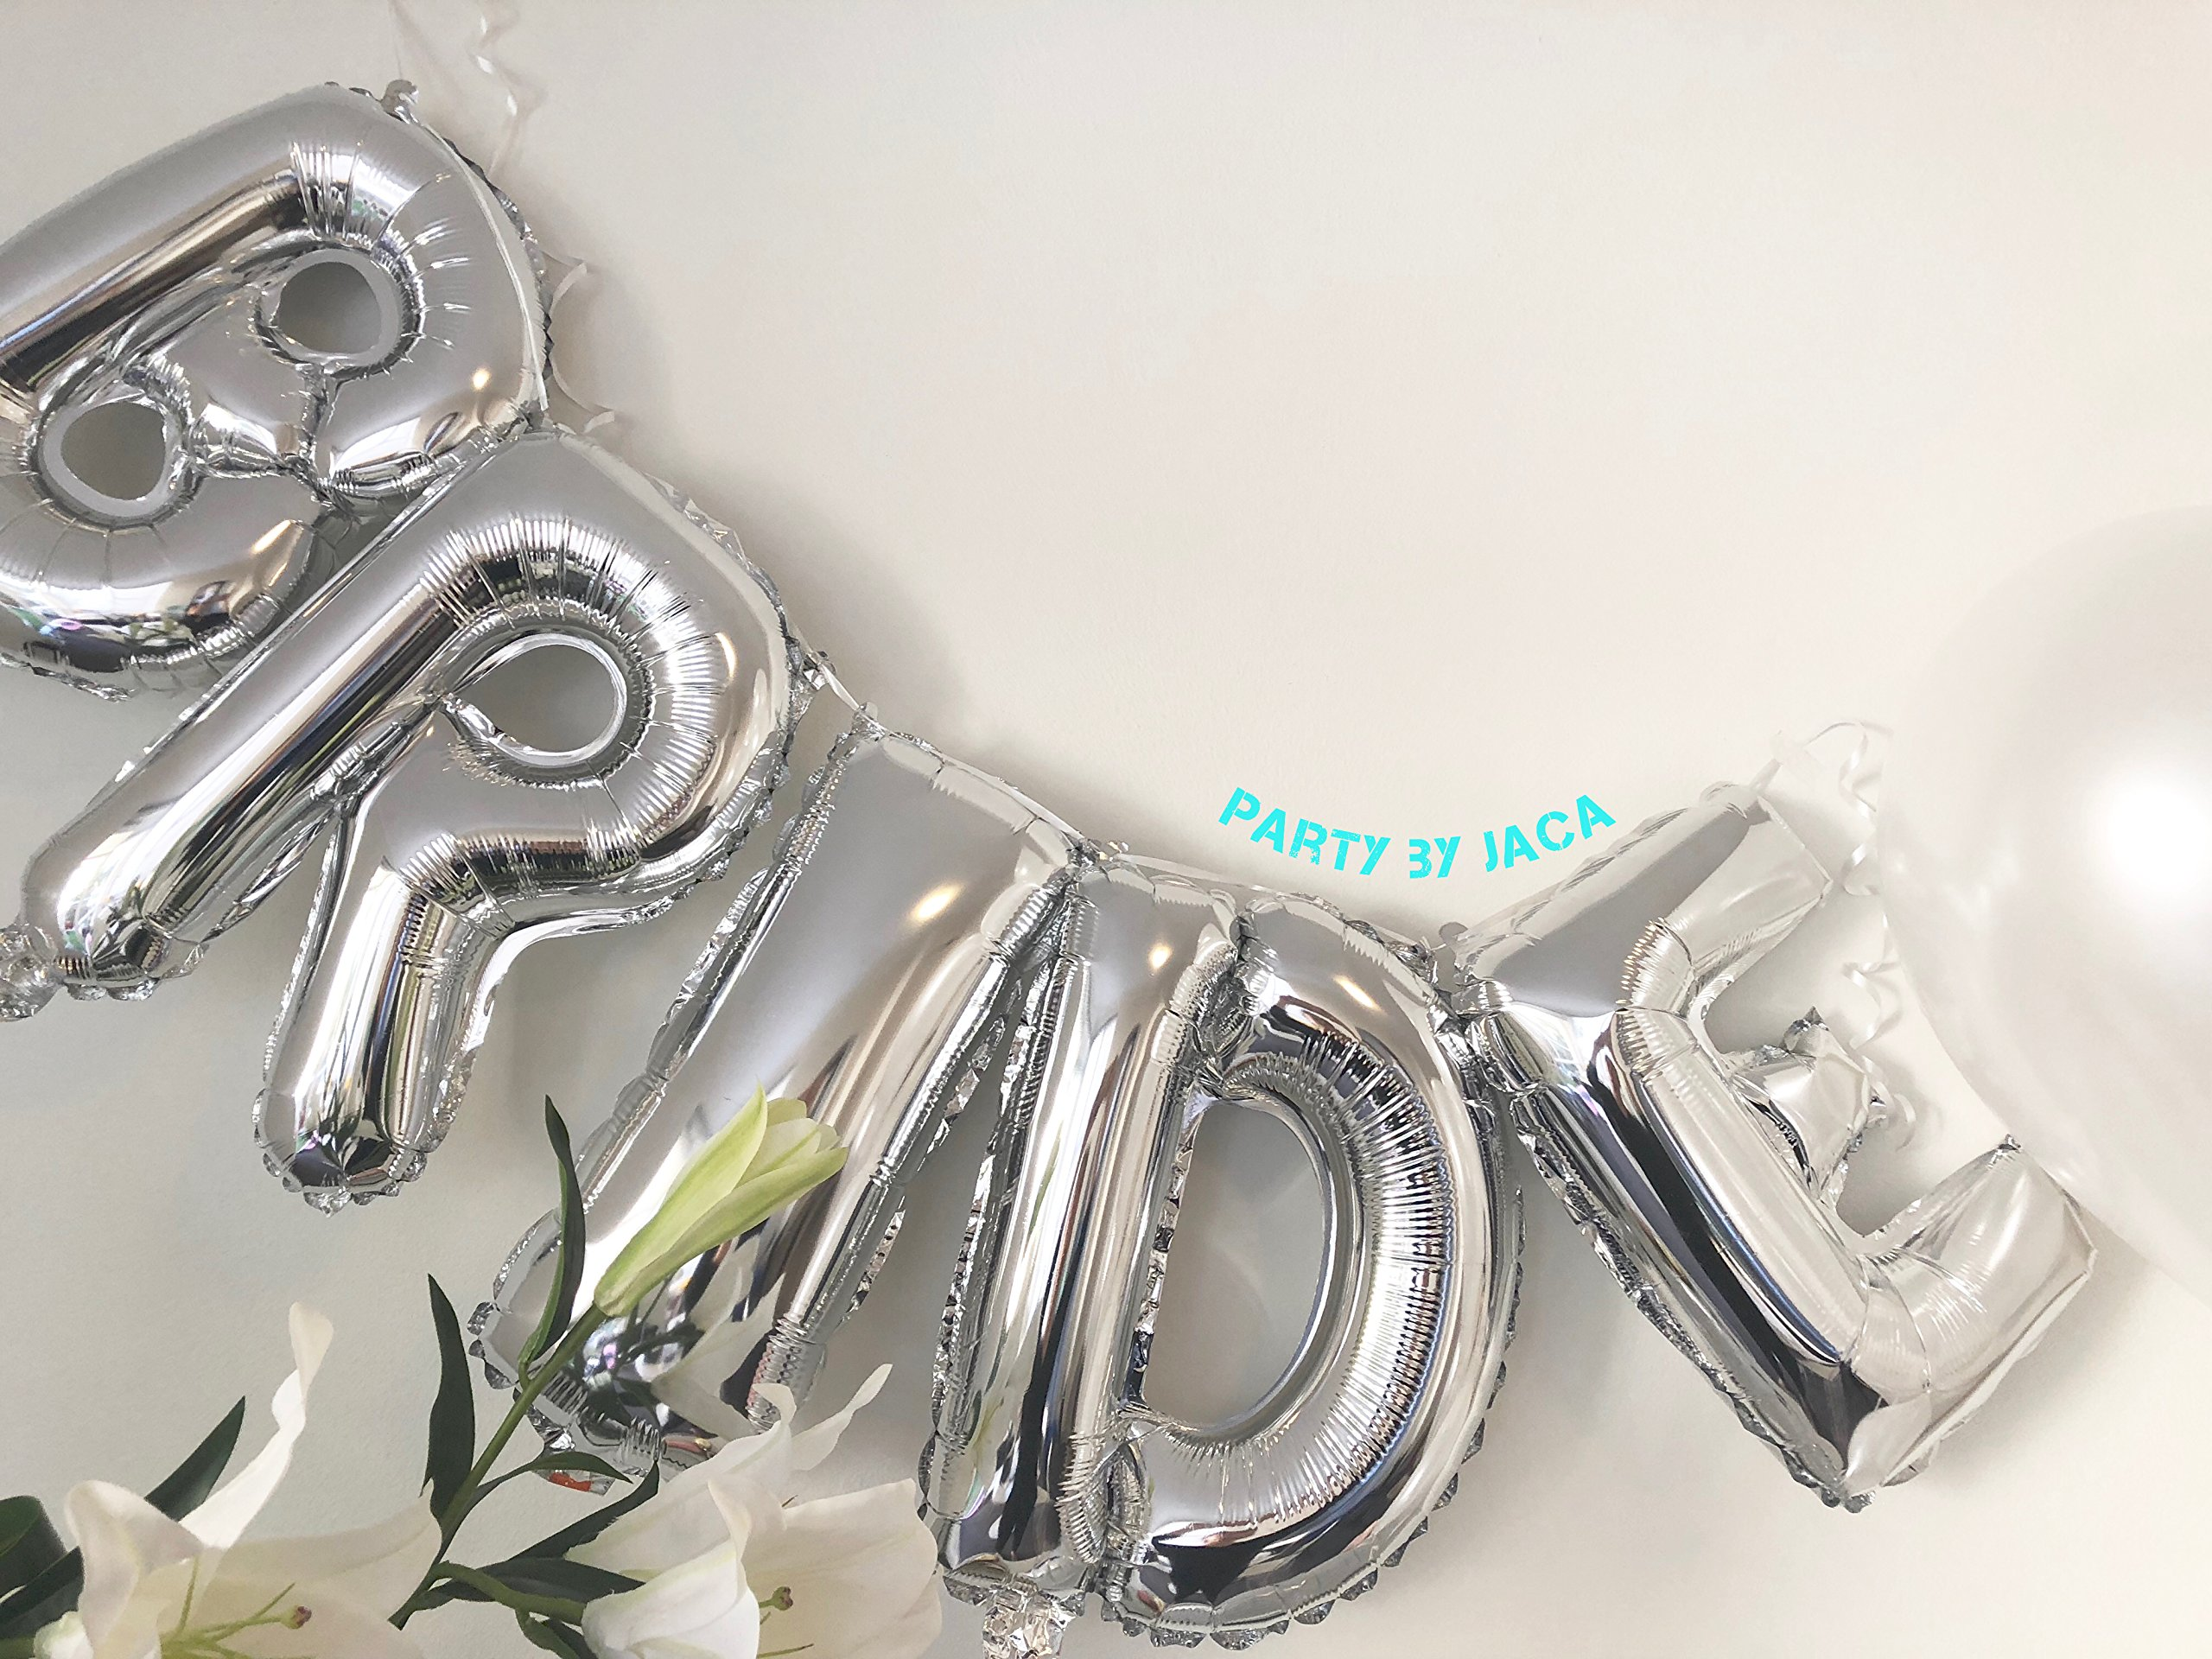 Silver & White Classy Hens Bachelorette KIT - 15 Piece Set: 8 Latex Balloons - 1 3D FOIL Banner Bride - 1 Satin Trimmed Veil - 1 Shiny Ring Balloon by JACA (Image #3)